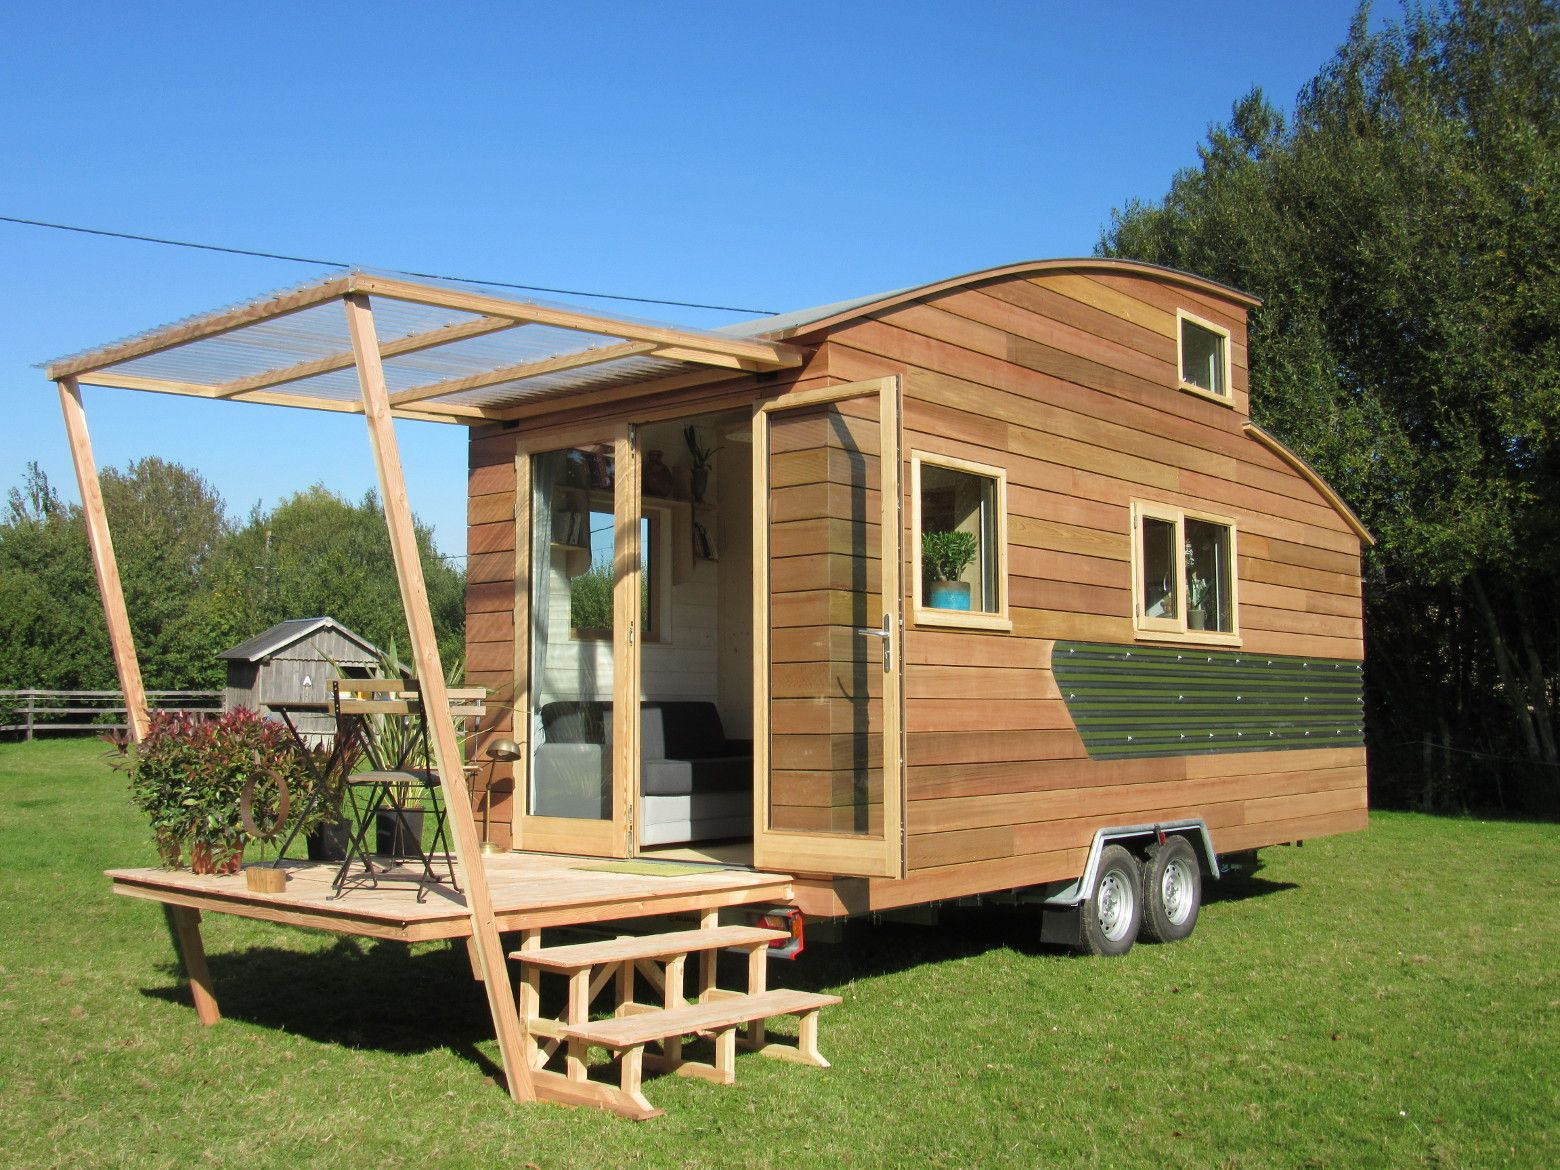 la tiny house builds tiny homes in france they build several different designs from more traditional looking gable roofed homes to curved roof homes like